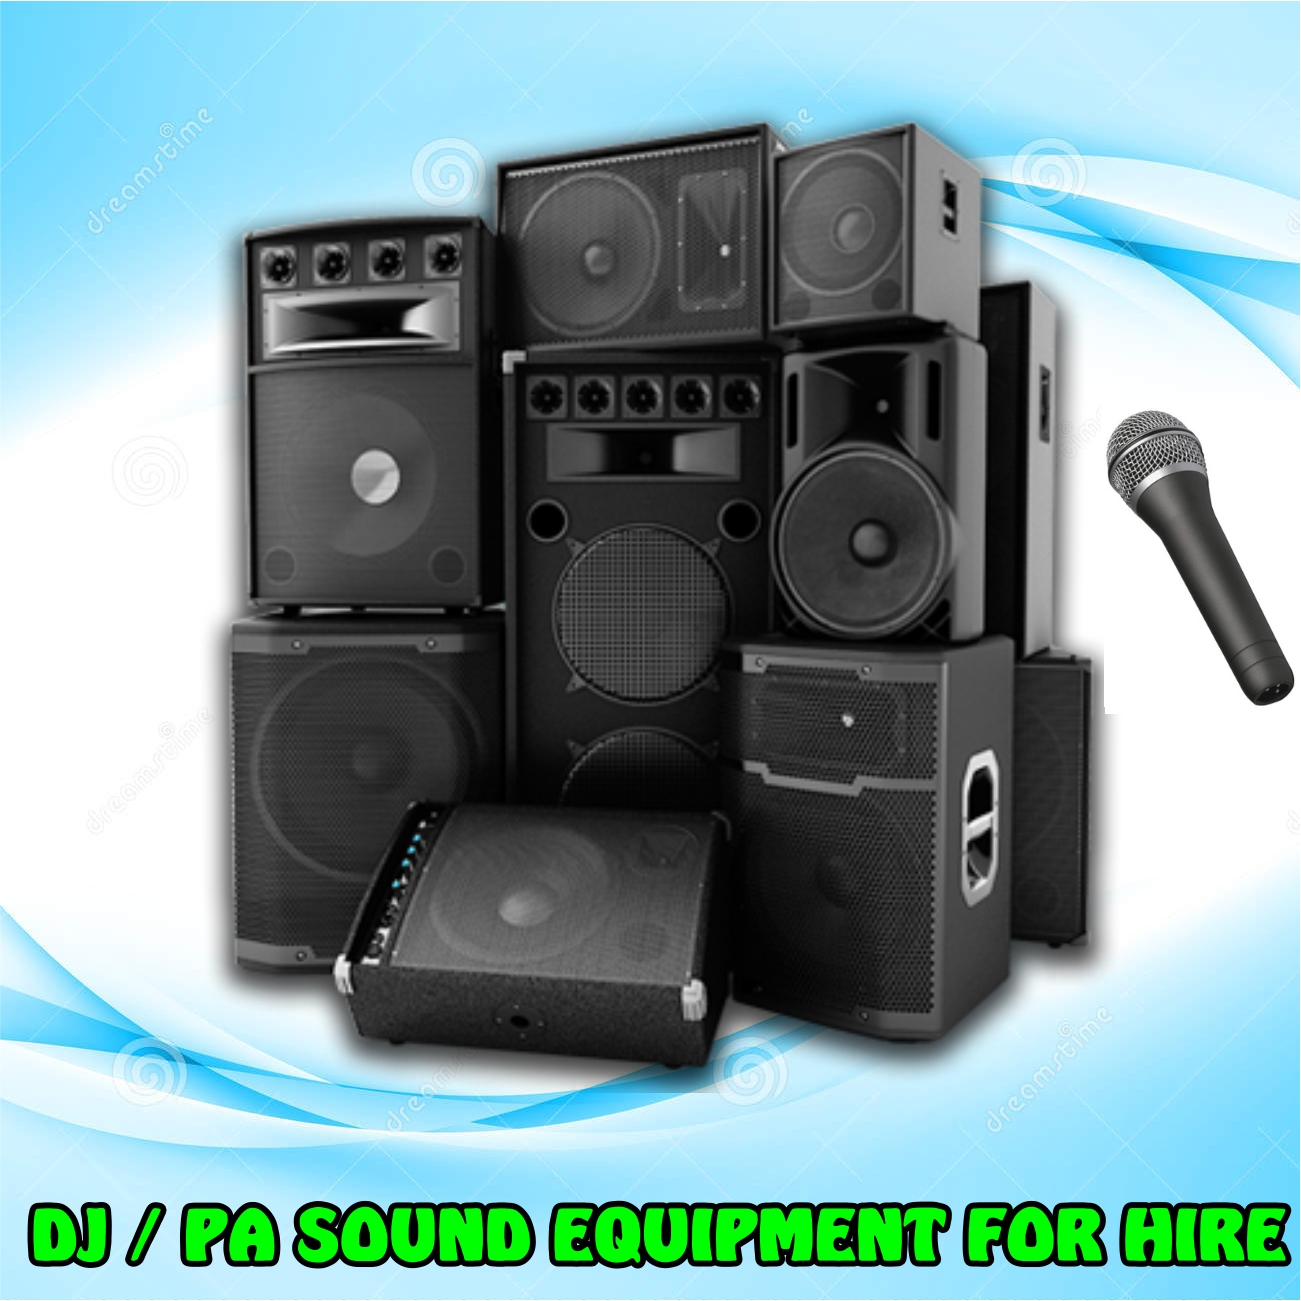 SOUND DJ EQUIPMENT FOR DRY HIRE FROM OUR STORE MOST AFFORDABLE DEAL FOR HIRING OF PA SOUND EQUIPMENT AT GRAVITY SOUND AND LIGHTING WAREHOUSE 0315072736 SOUND HIRE PA SYSTEMS FOR HIRE GRAVITY DJ STORE OUTDOOR SOUND SPEAKERS AMPS FOR HIRE DISCO SOUND SYSTEM FOR HIRE IN DURBAN GRAVITY DJ STORE MIC AND SPEAKERS FOR HIRE GRAVITY DJ STORE 0315072463 DJ MIXER CONSOLE FOR HIRE IN DURBAN GRAVITY SOUND AND LIGHTING WAREHOUSE 0315072736